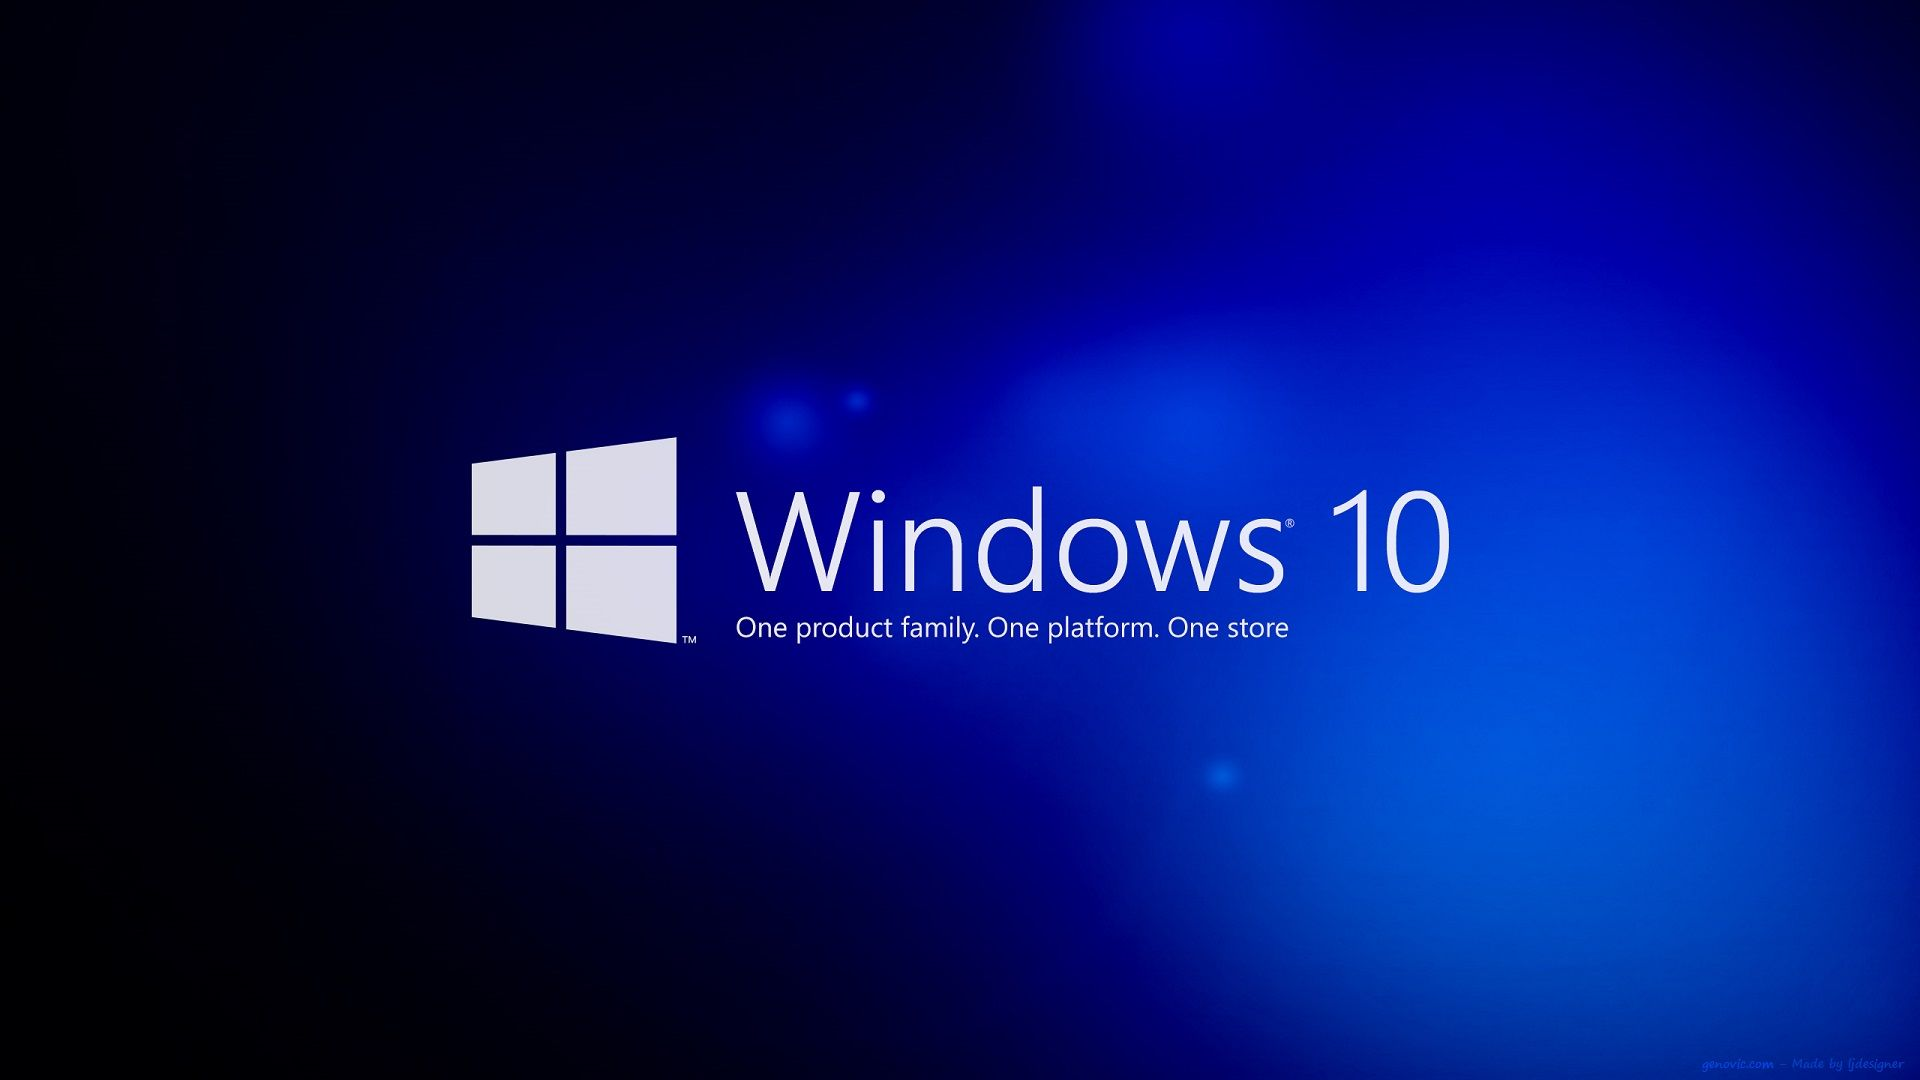 10 Best Windows 10 Wallpapers Free Hd Wallpapers Part 12 In 2020 Windows 10 Microsoft Windows 10 Download Windows 10